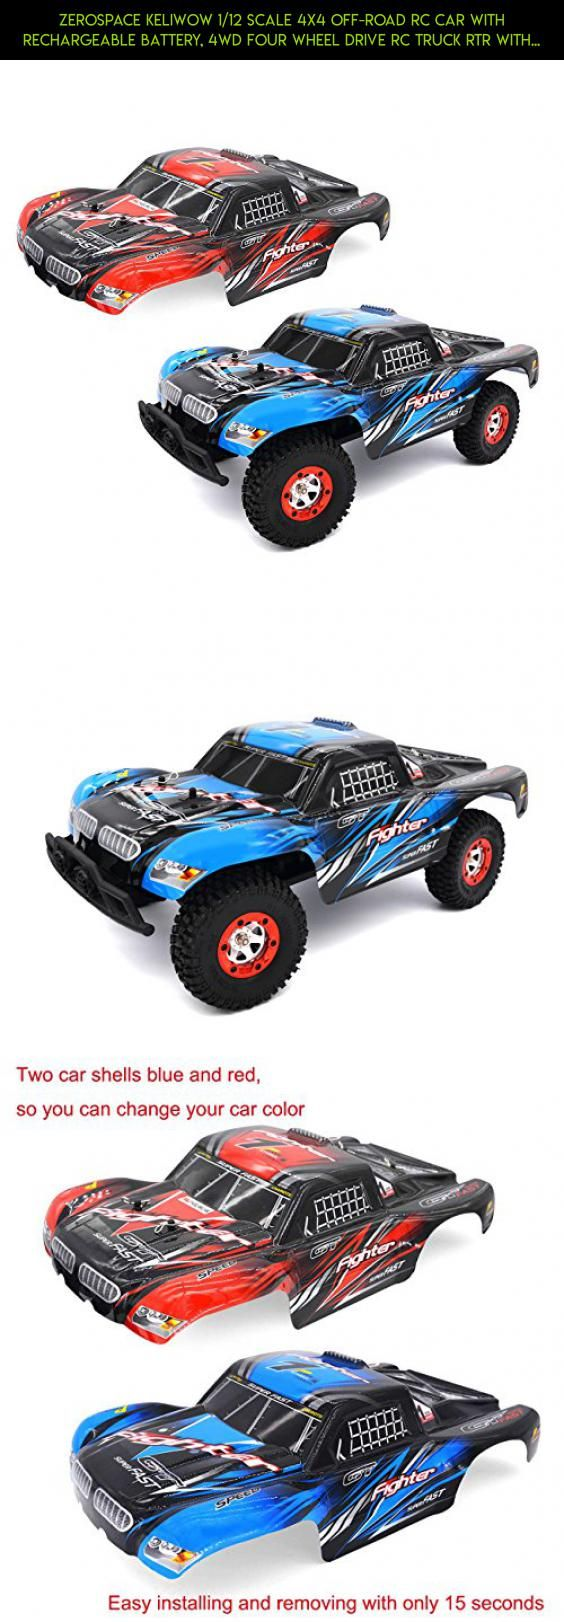 Zerospace Keliwow 1/12 Scale 4x4 Off-road RC Car with Rechargeable Battery, 4WD Four Wheel Drive RC Truck RTR with Two Car Shells Red and Blue #drone #gadgets #plans #products #road #camera #trucks #parts #traxxas #tech #technology #racing #off #shopping #fpv #4x4 #kit